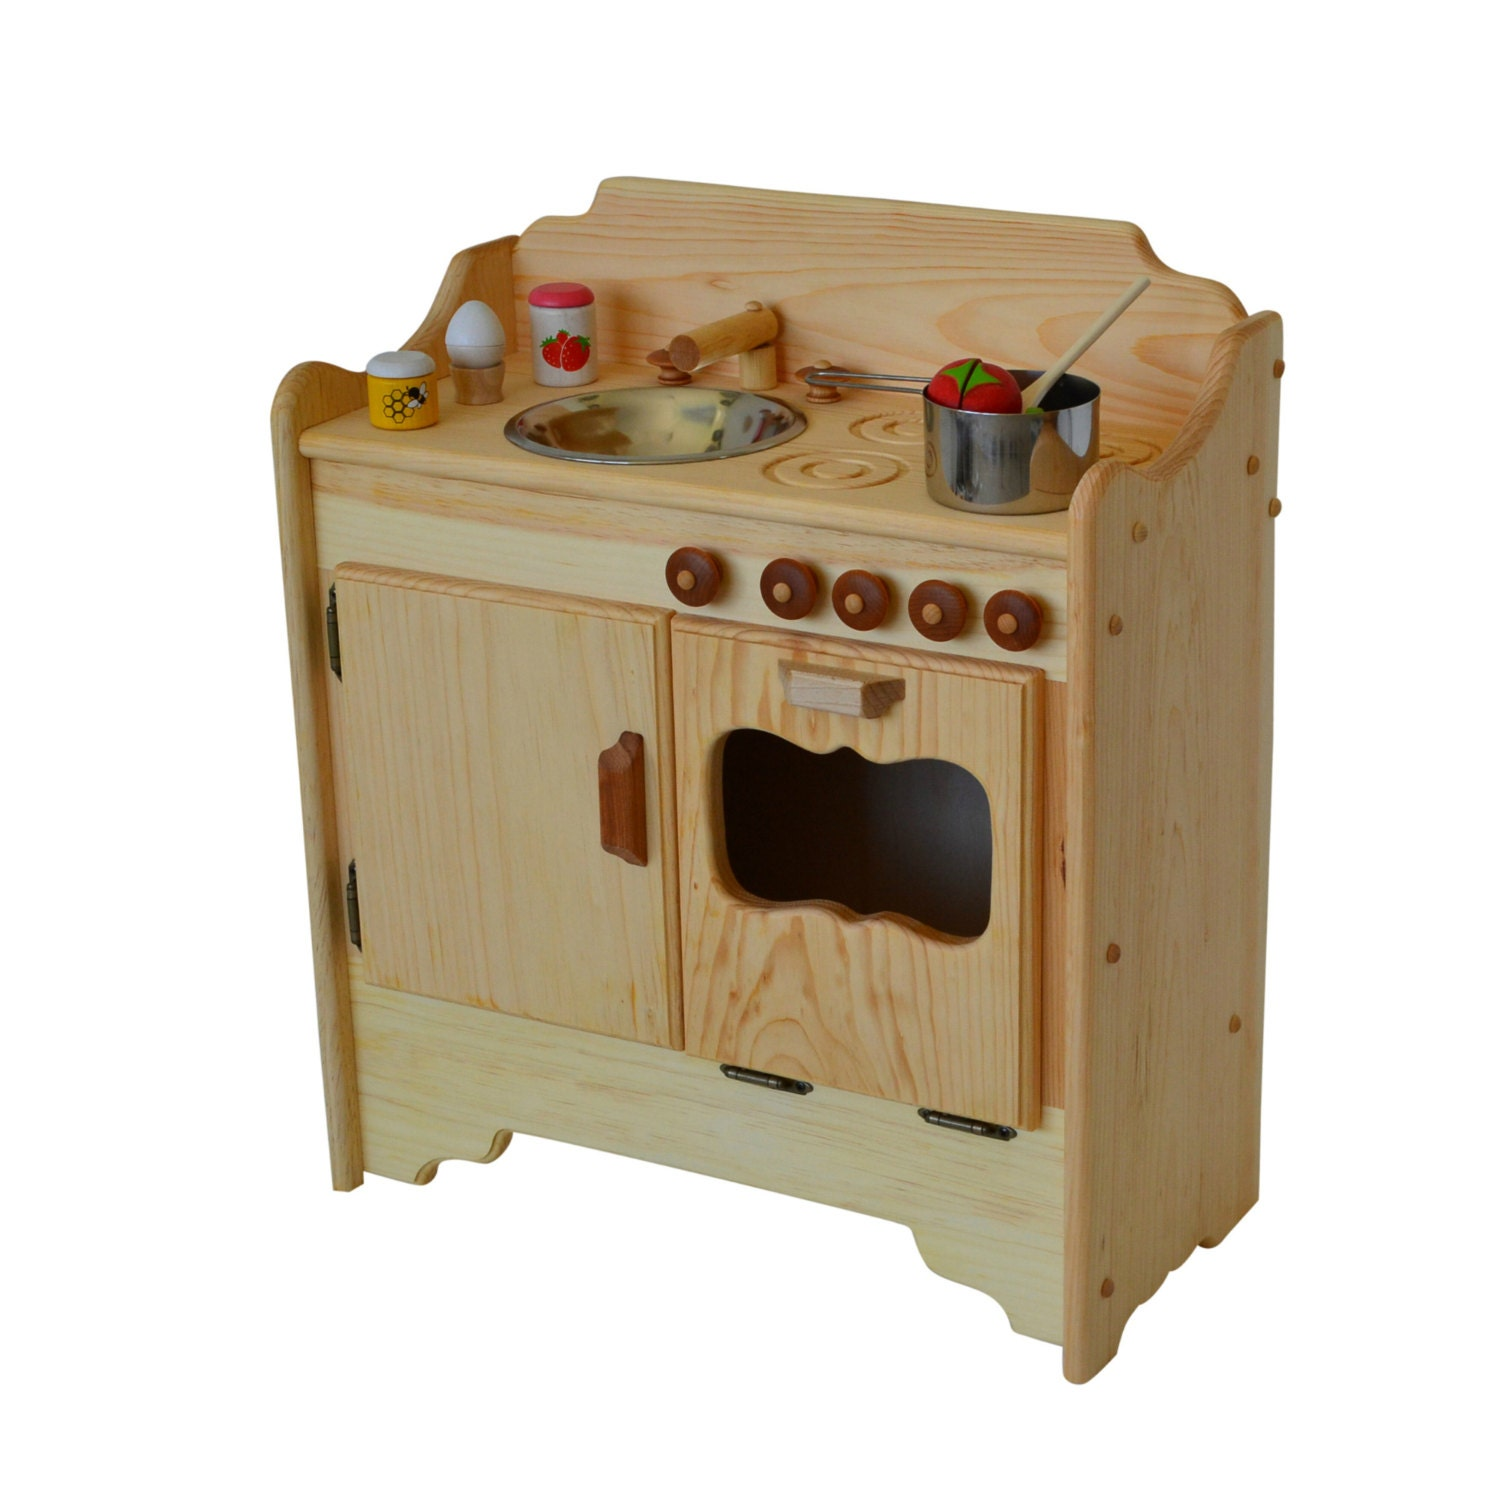 Play Kitchen Waldorf Wooden Play Kitchen Wooden Toy Kitchen